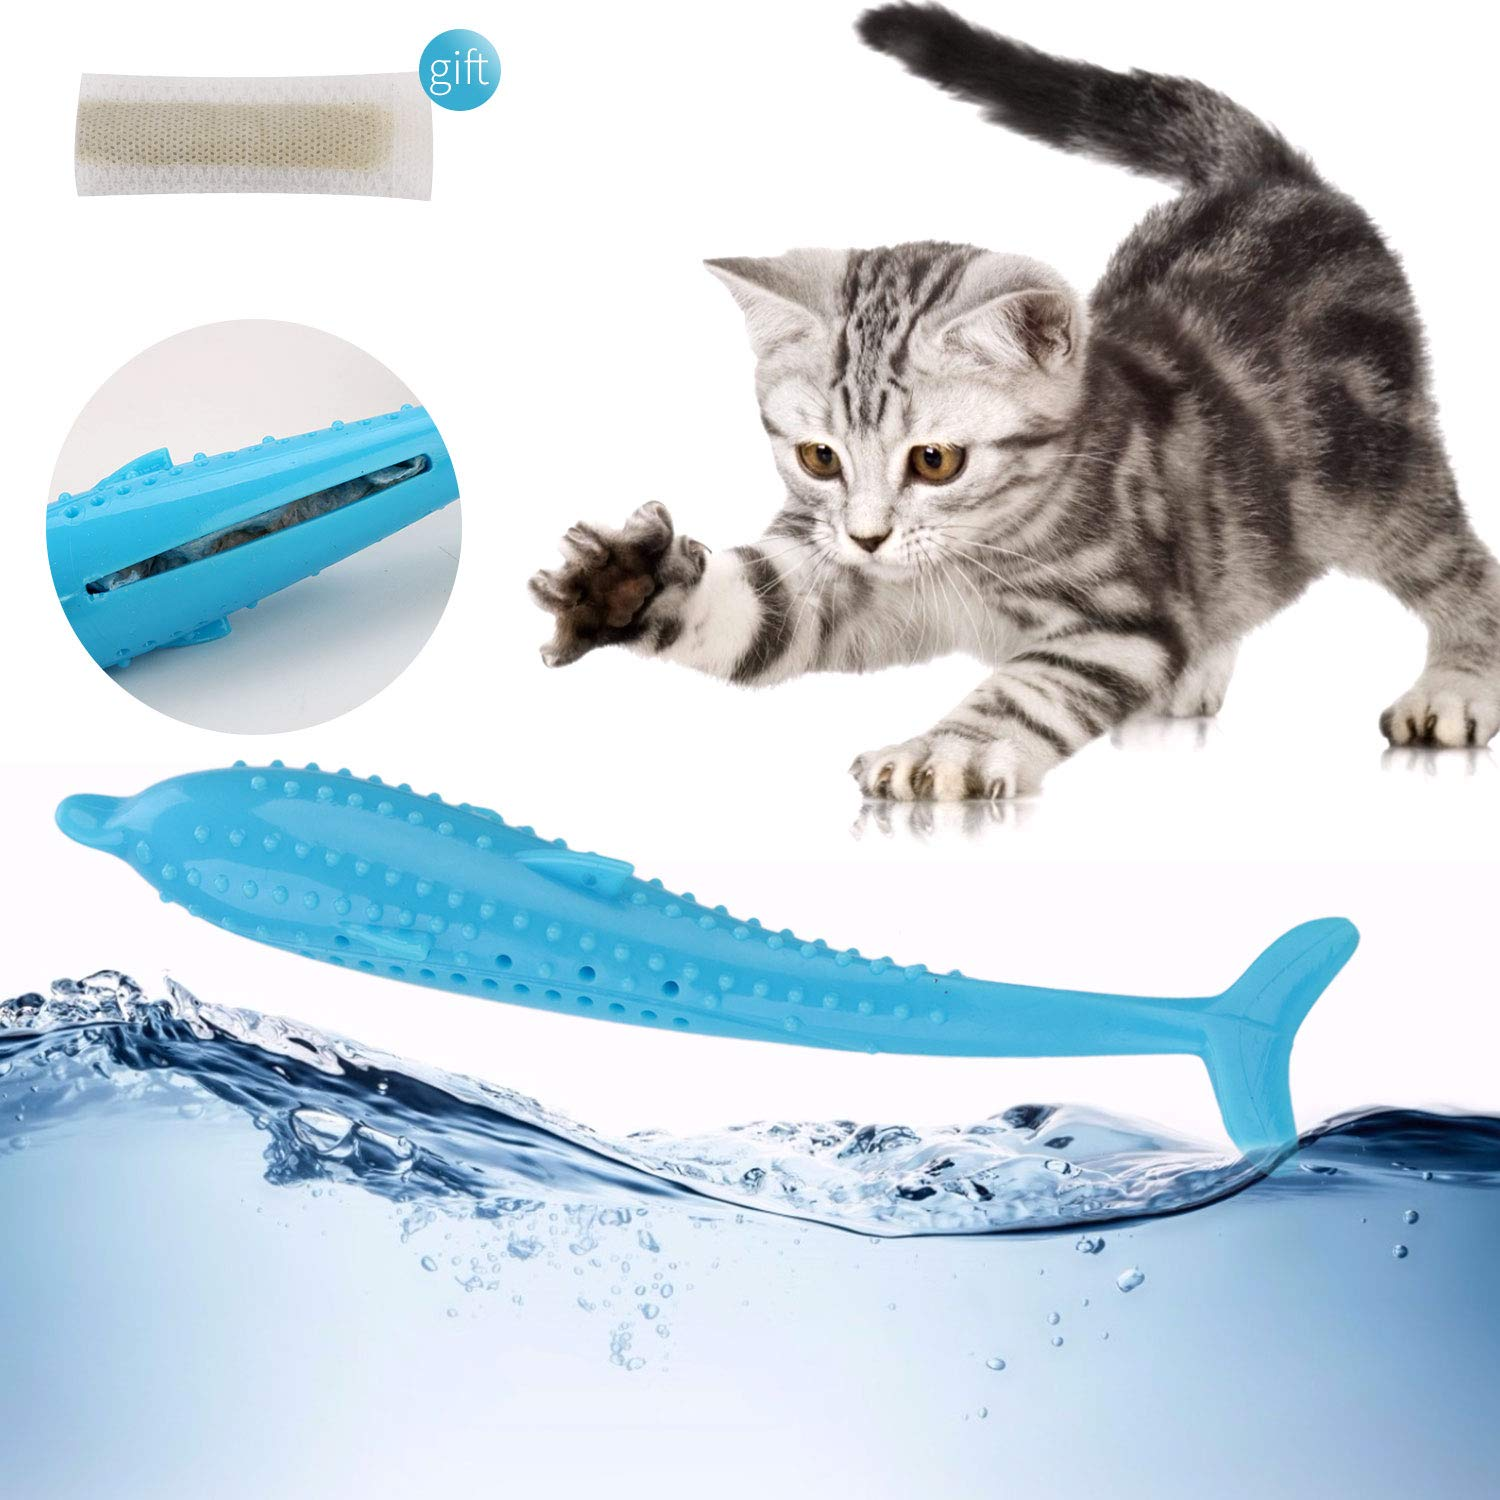 Legendog Pet Toy Creative Silicone Fish Shape Cat Toothbrush Cat Teething Toy with Catnip